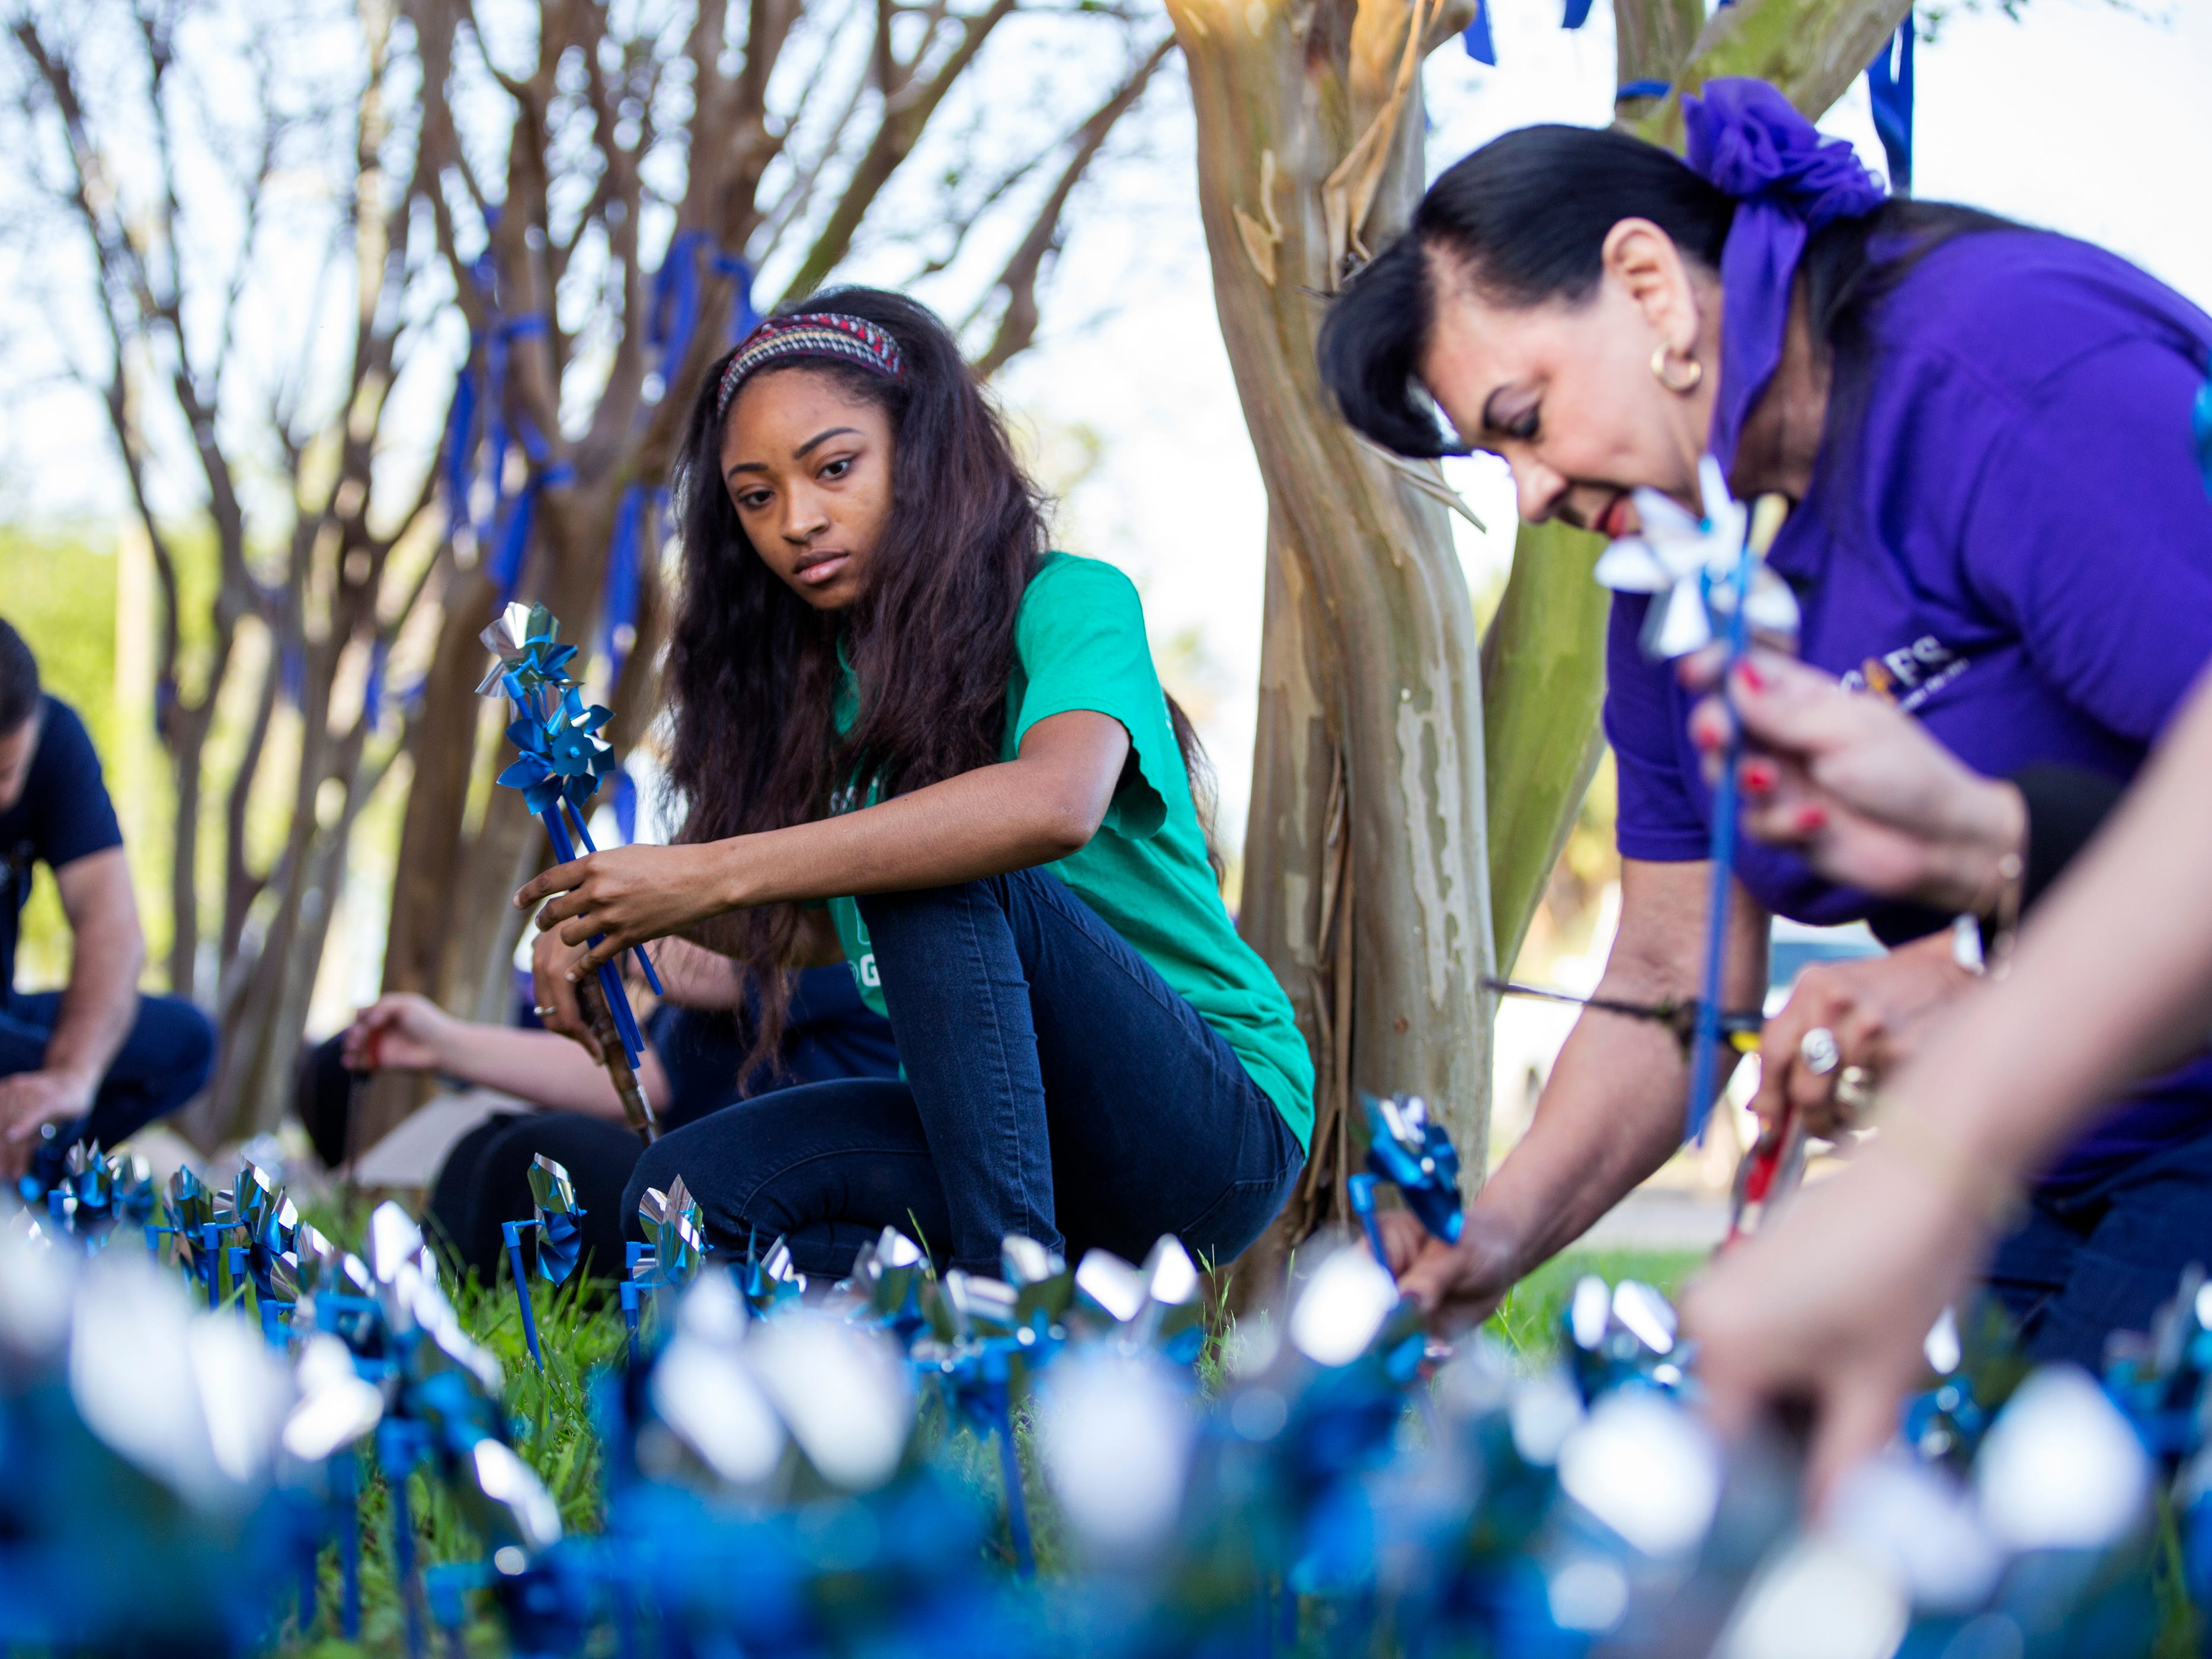 Alesha Norris (center) help install pinwheels in front of CASA of the Coastal Bend on Friday, March 29, 2019. The 1,066 pinwheels represent a child from the Coastal Bend who was in foster care last year and will stay up throughout the month of April, which is Child Abuse Awareness Month.